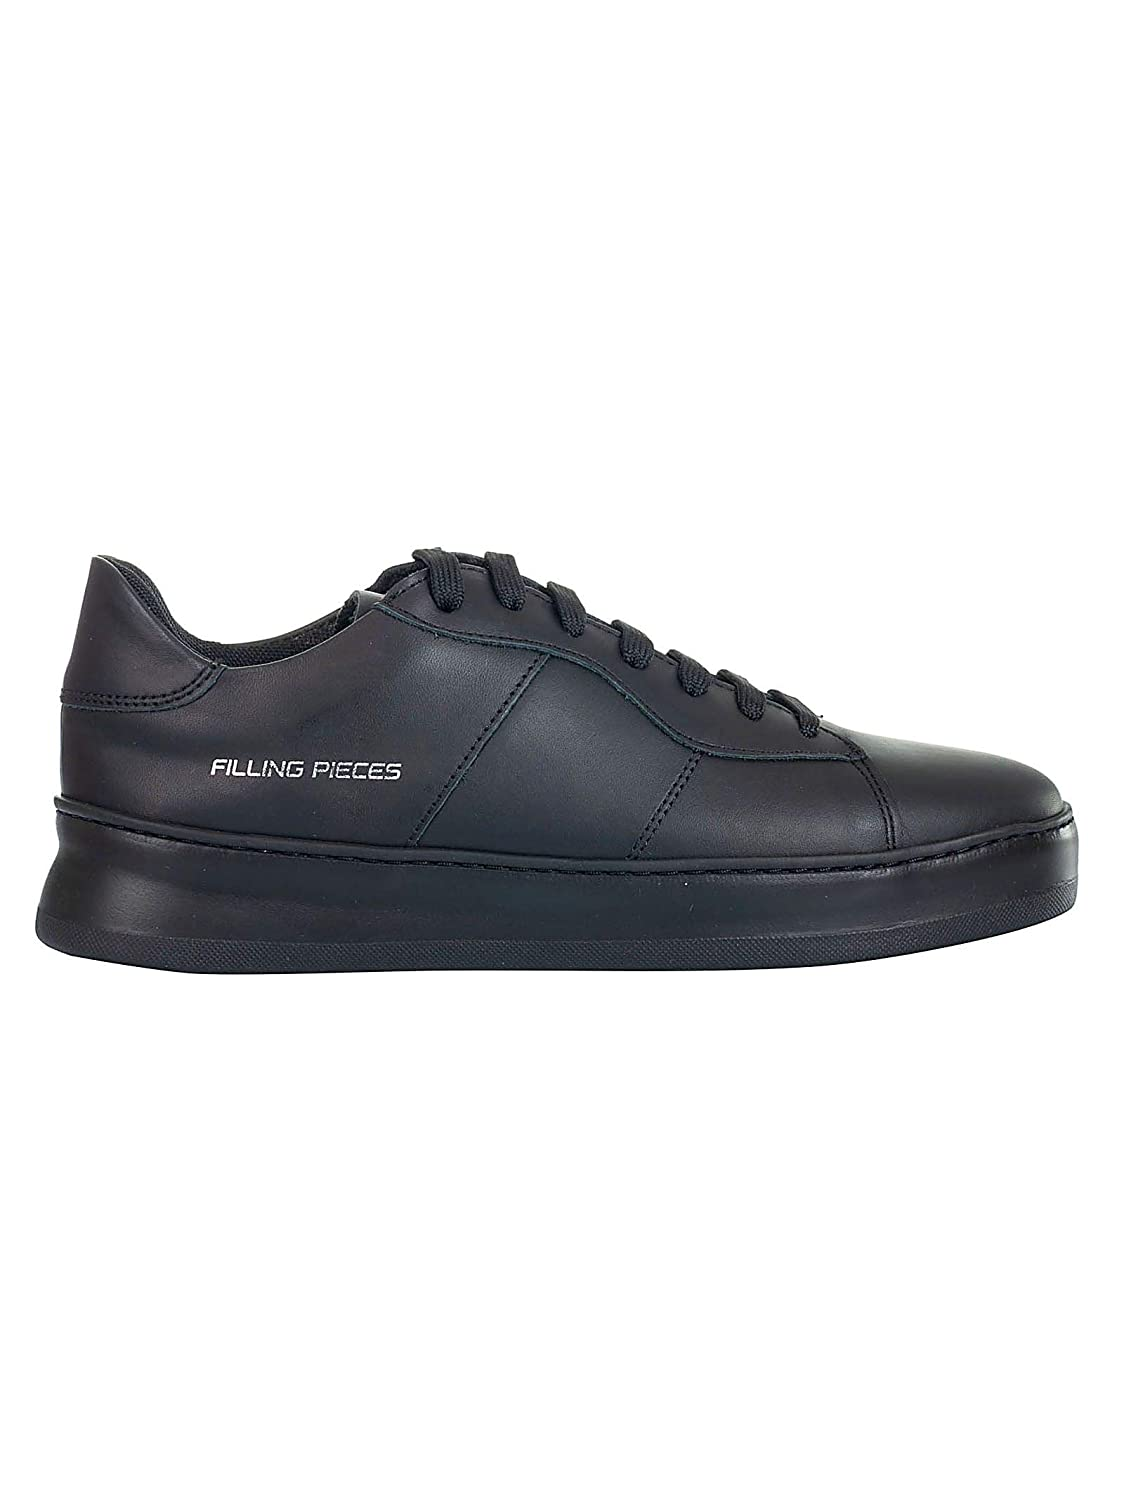 - FILLING PIECES Men's 3822727ALLBLACK Black Leather Sneakers